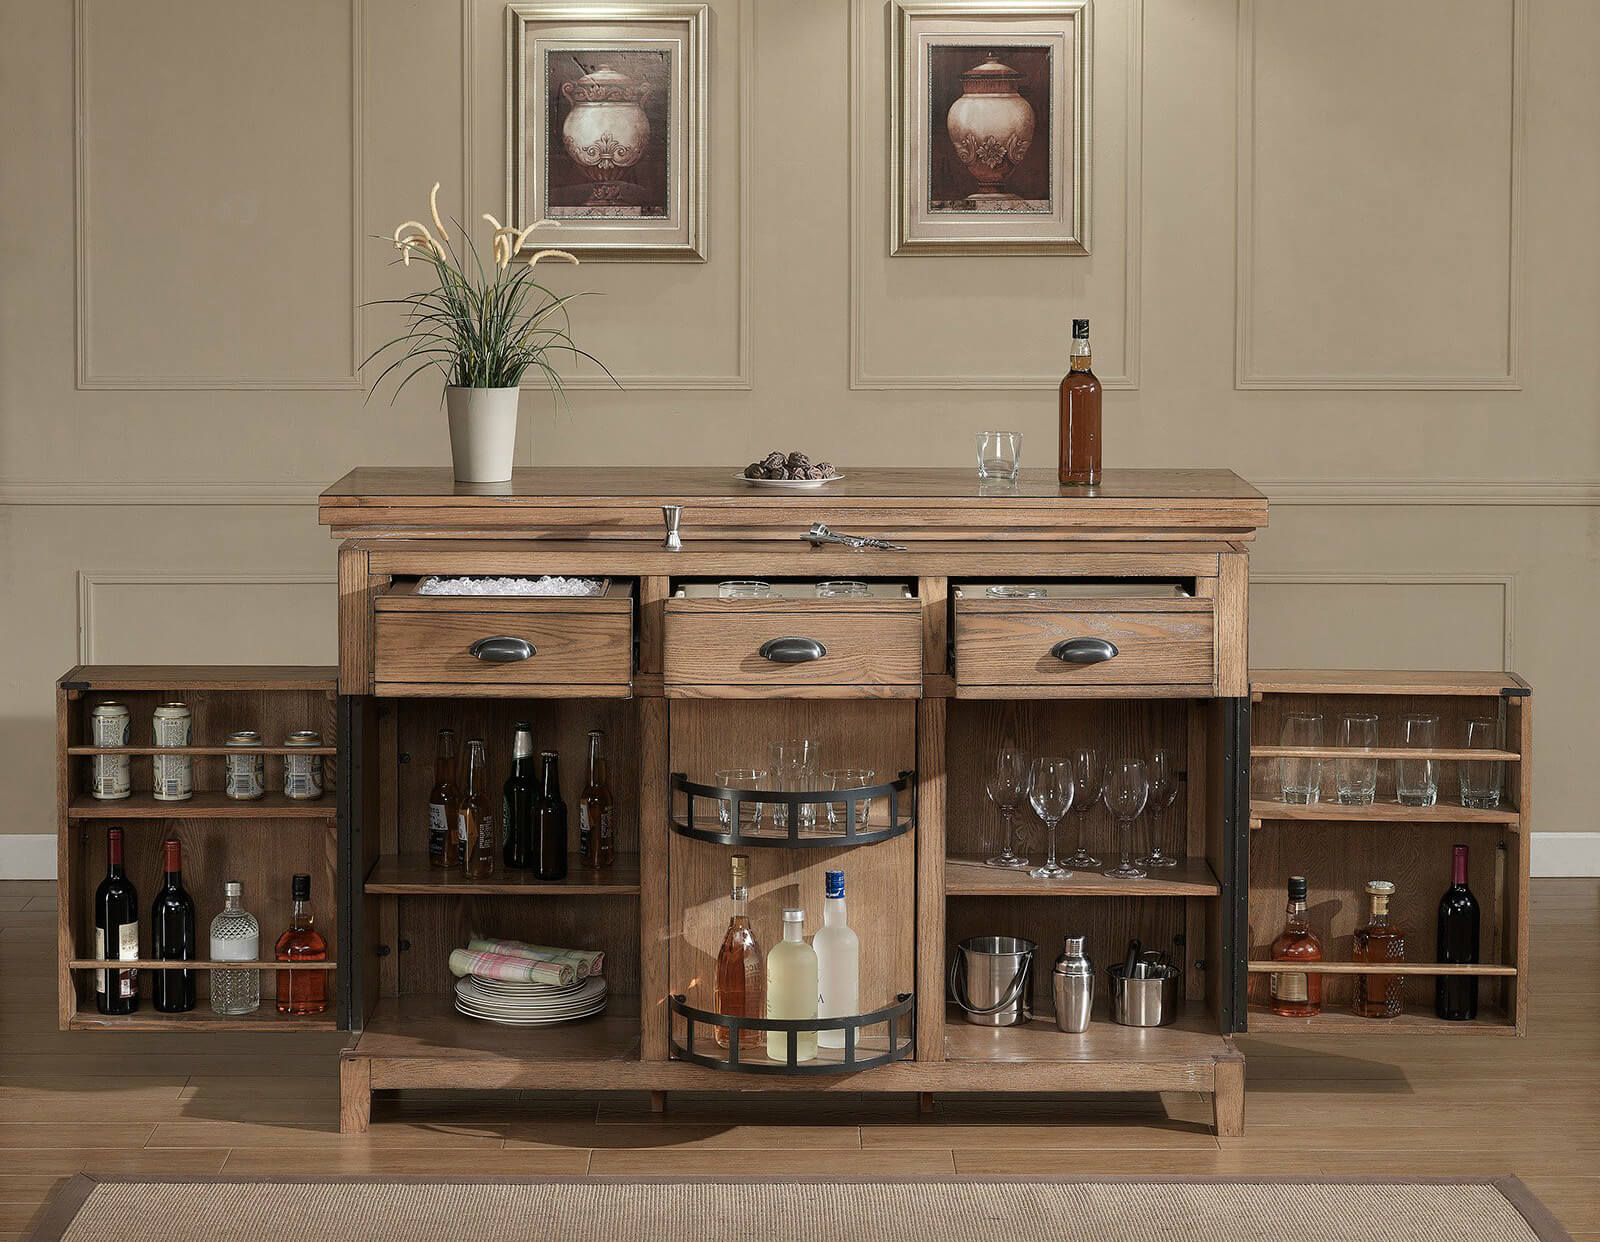 Awesome As You Can See, The Amount Of Storage In This Rustic Home Bar Cabinet Unit